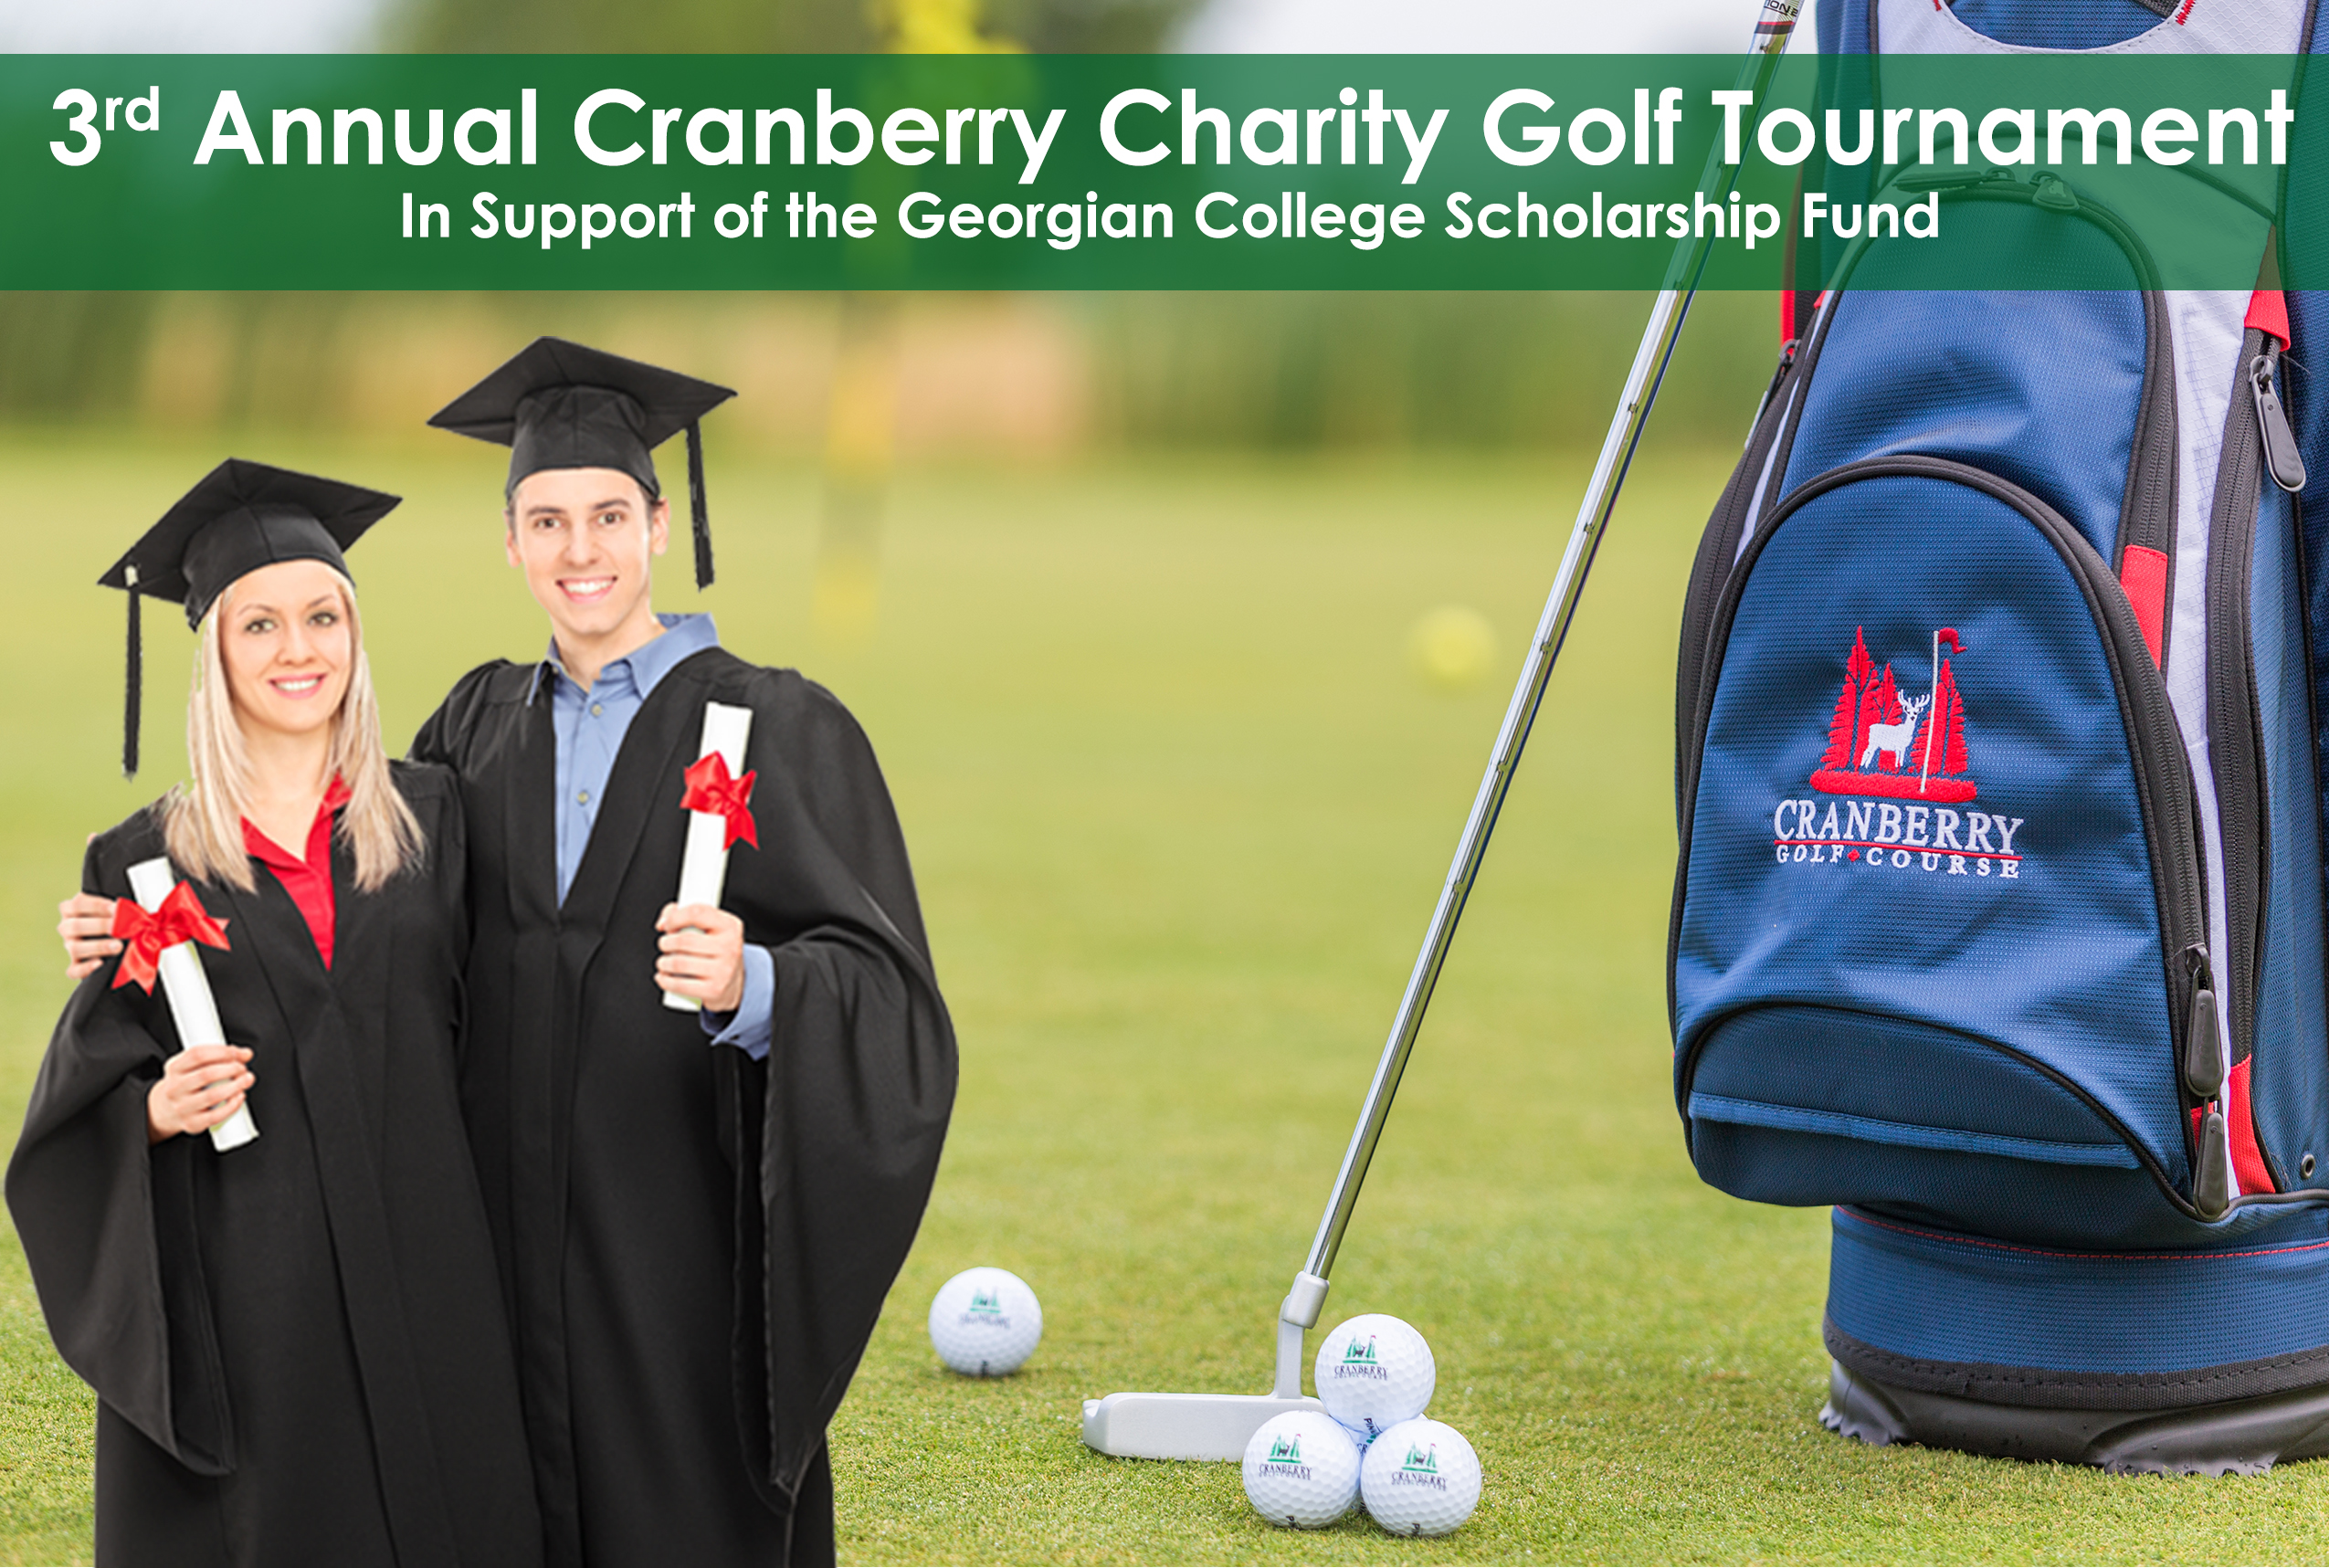 THIRD ANNUAL CHARITY GOLF TOURNAMENT IS JUST AROUND THE CORNER!